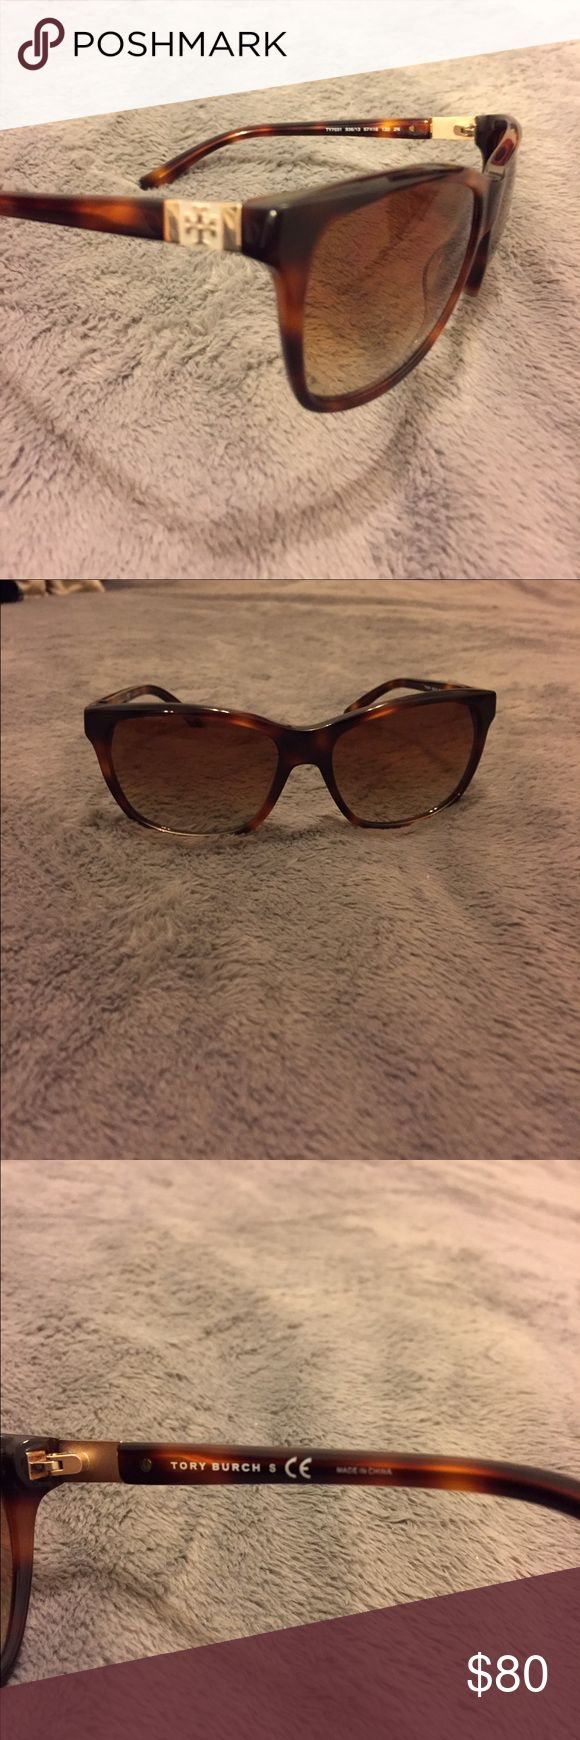 Tory Burch polarized gradient tortoise sunglasses Tory Burch polarized sunglasses. Tortoise frames with gold T logo on corners. Gradient lenses. No signs of use. Unfortunately don't have the case anymore. Great condition! Tory Burch Accessories Sunglasses